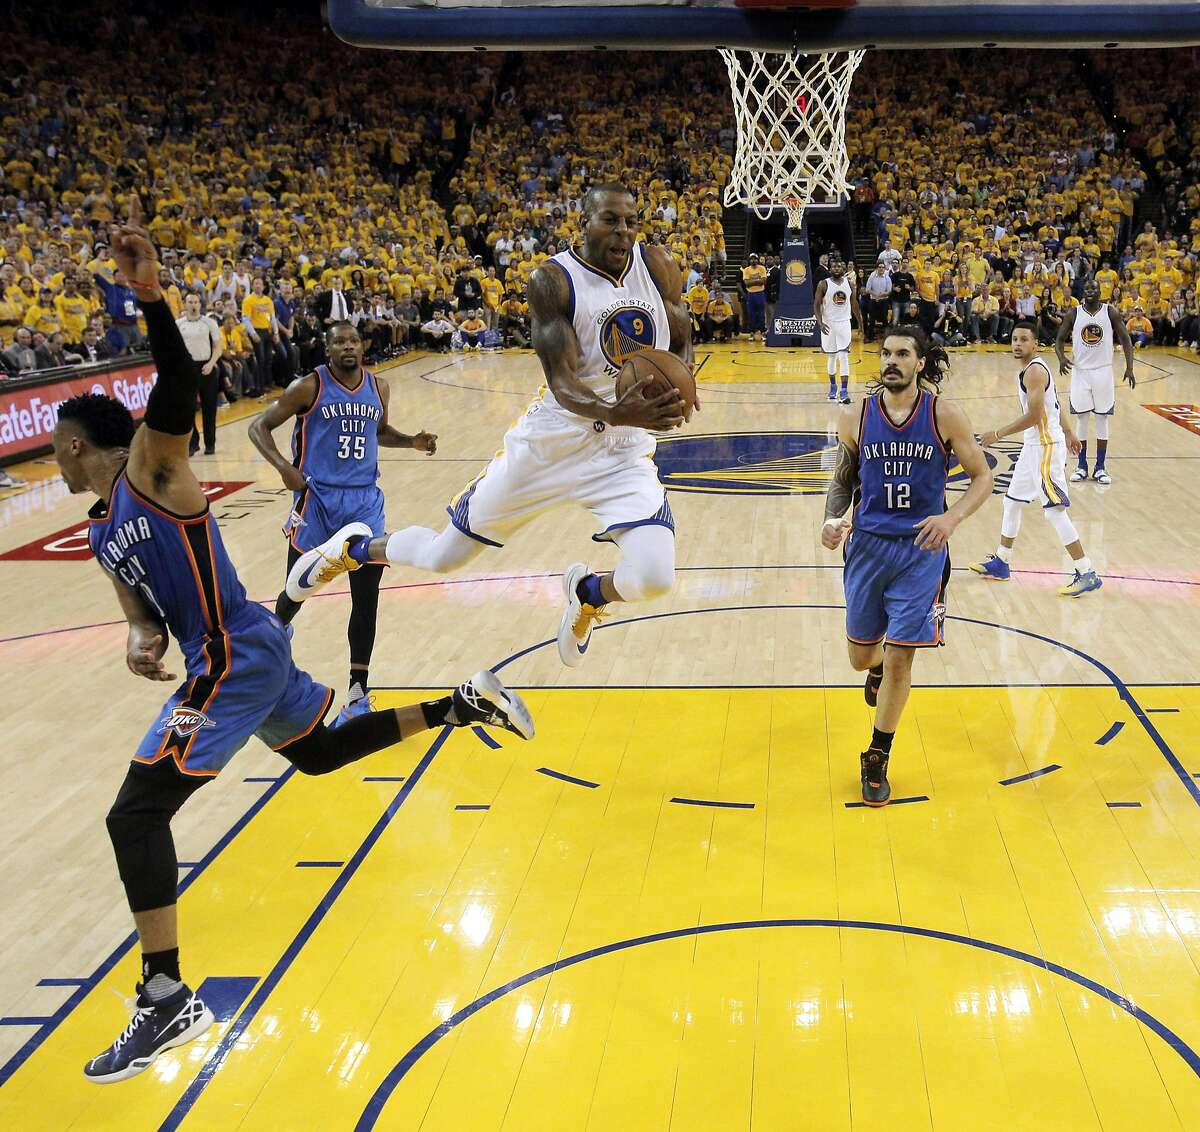 Andre Iguodala (9) is fouled by Russell Westbrook (0) in the first half as the Golden State Warriors played the Oklahoma City Thunder in Game 2 of the Western Conference Finals at Oracle Arena in Oakland, Calif., on Wednesday, May 18, 2016.